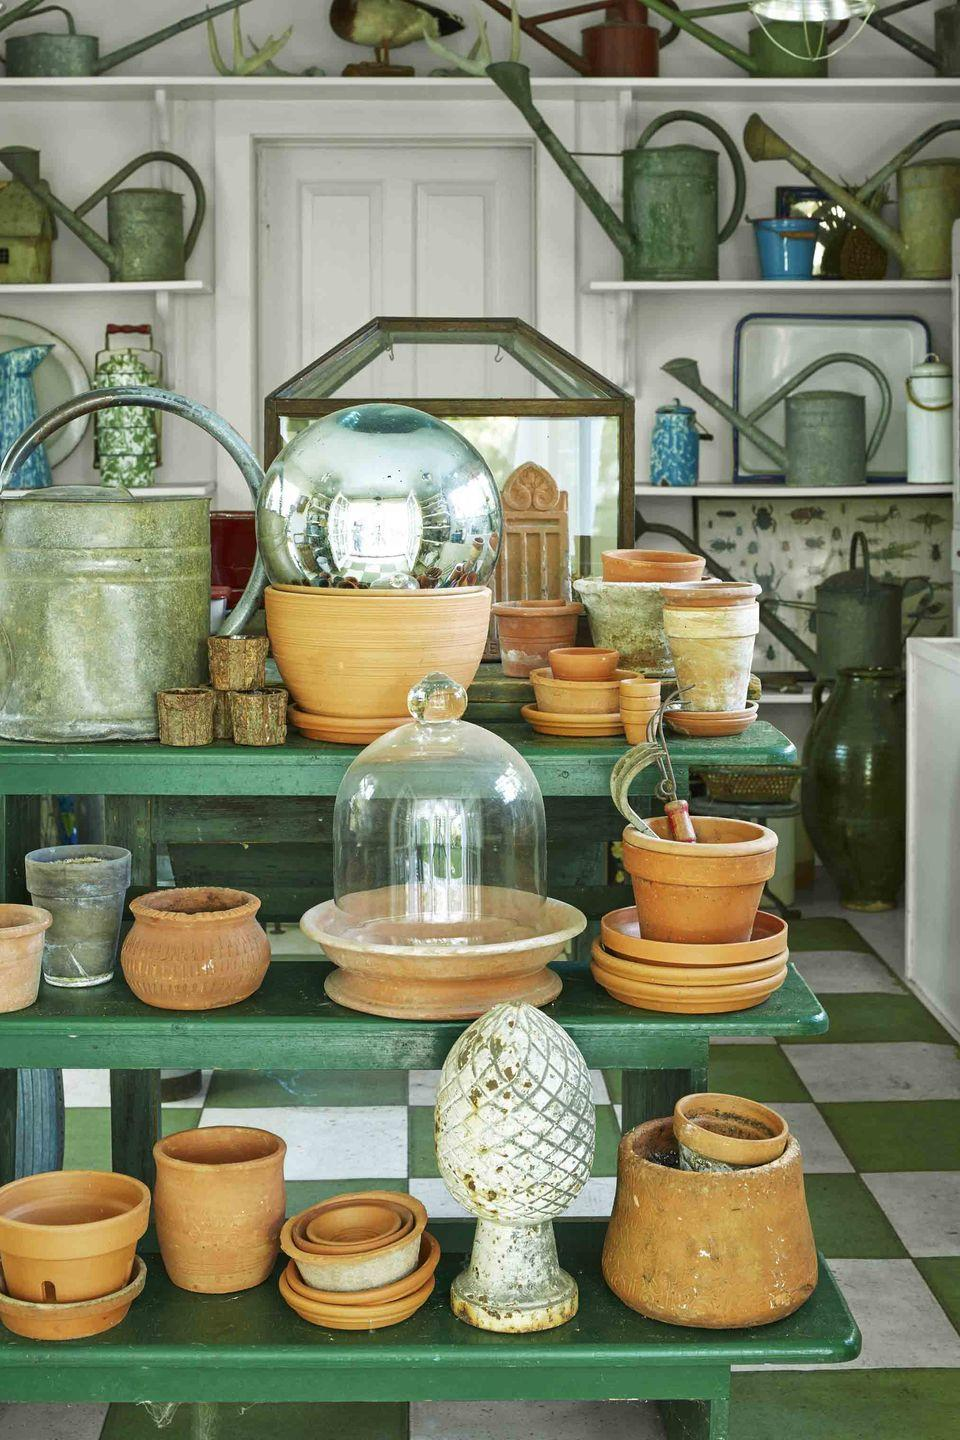 "<p>Seasoned home gardeners know how easy it is for <a href=""https://www.veranda.com/outdoor-garden/g32947916/garden-shed-ideas/"" rel=""nofollow noopener"" target=""_blank"" data-ylk=""slk:potting sheds"" class=""link rapid-noclick-resp"">potting sheds</a> to fall into disarray. <a href=""https://www.veranda.com/outdoor-garden/a32721442/connecticut-garden-bill-reynolds-robb-nestor/"" rel=""nofollow noopener"" target=""_blank"" data-ylk=""slk:Bill Reynolds and Robb Nestor"" class=""link rapid-noclick-resp"">Bill Reynolds and Robb Nestor</a> cleverly divided their utilitarian shed in a gallery-like fashion with specific sections just for pots, cloches, and vintage watering cans. </p>"